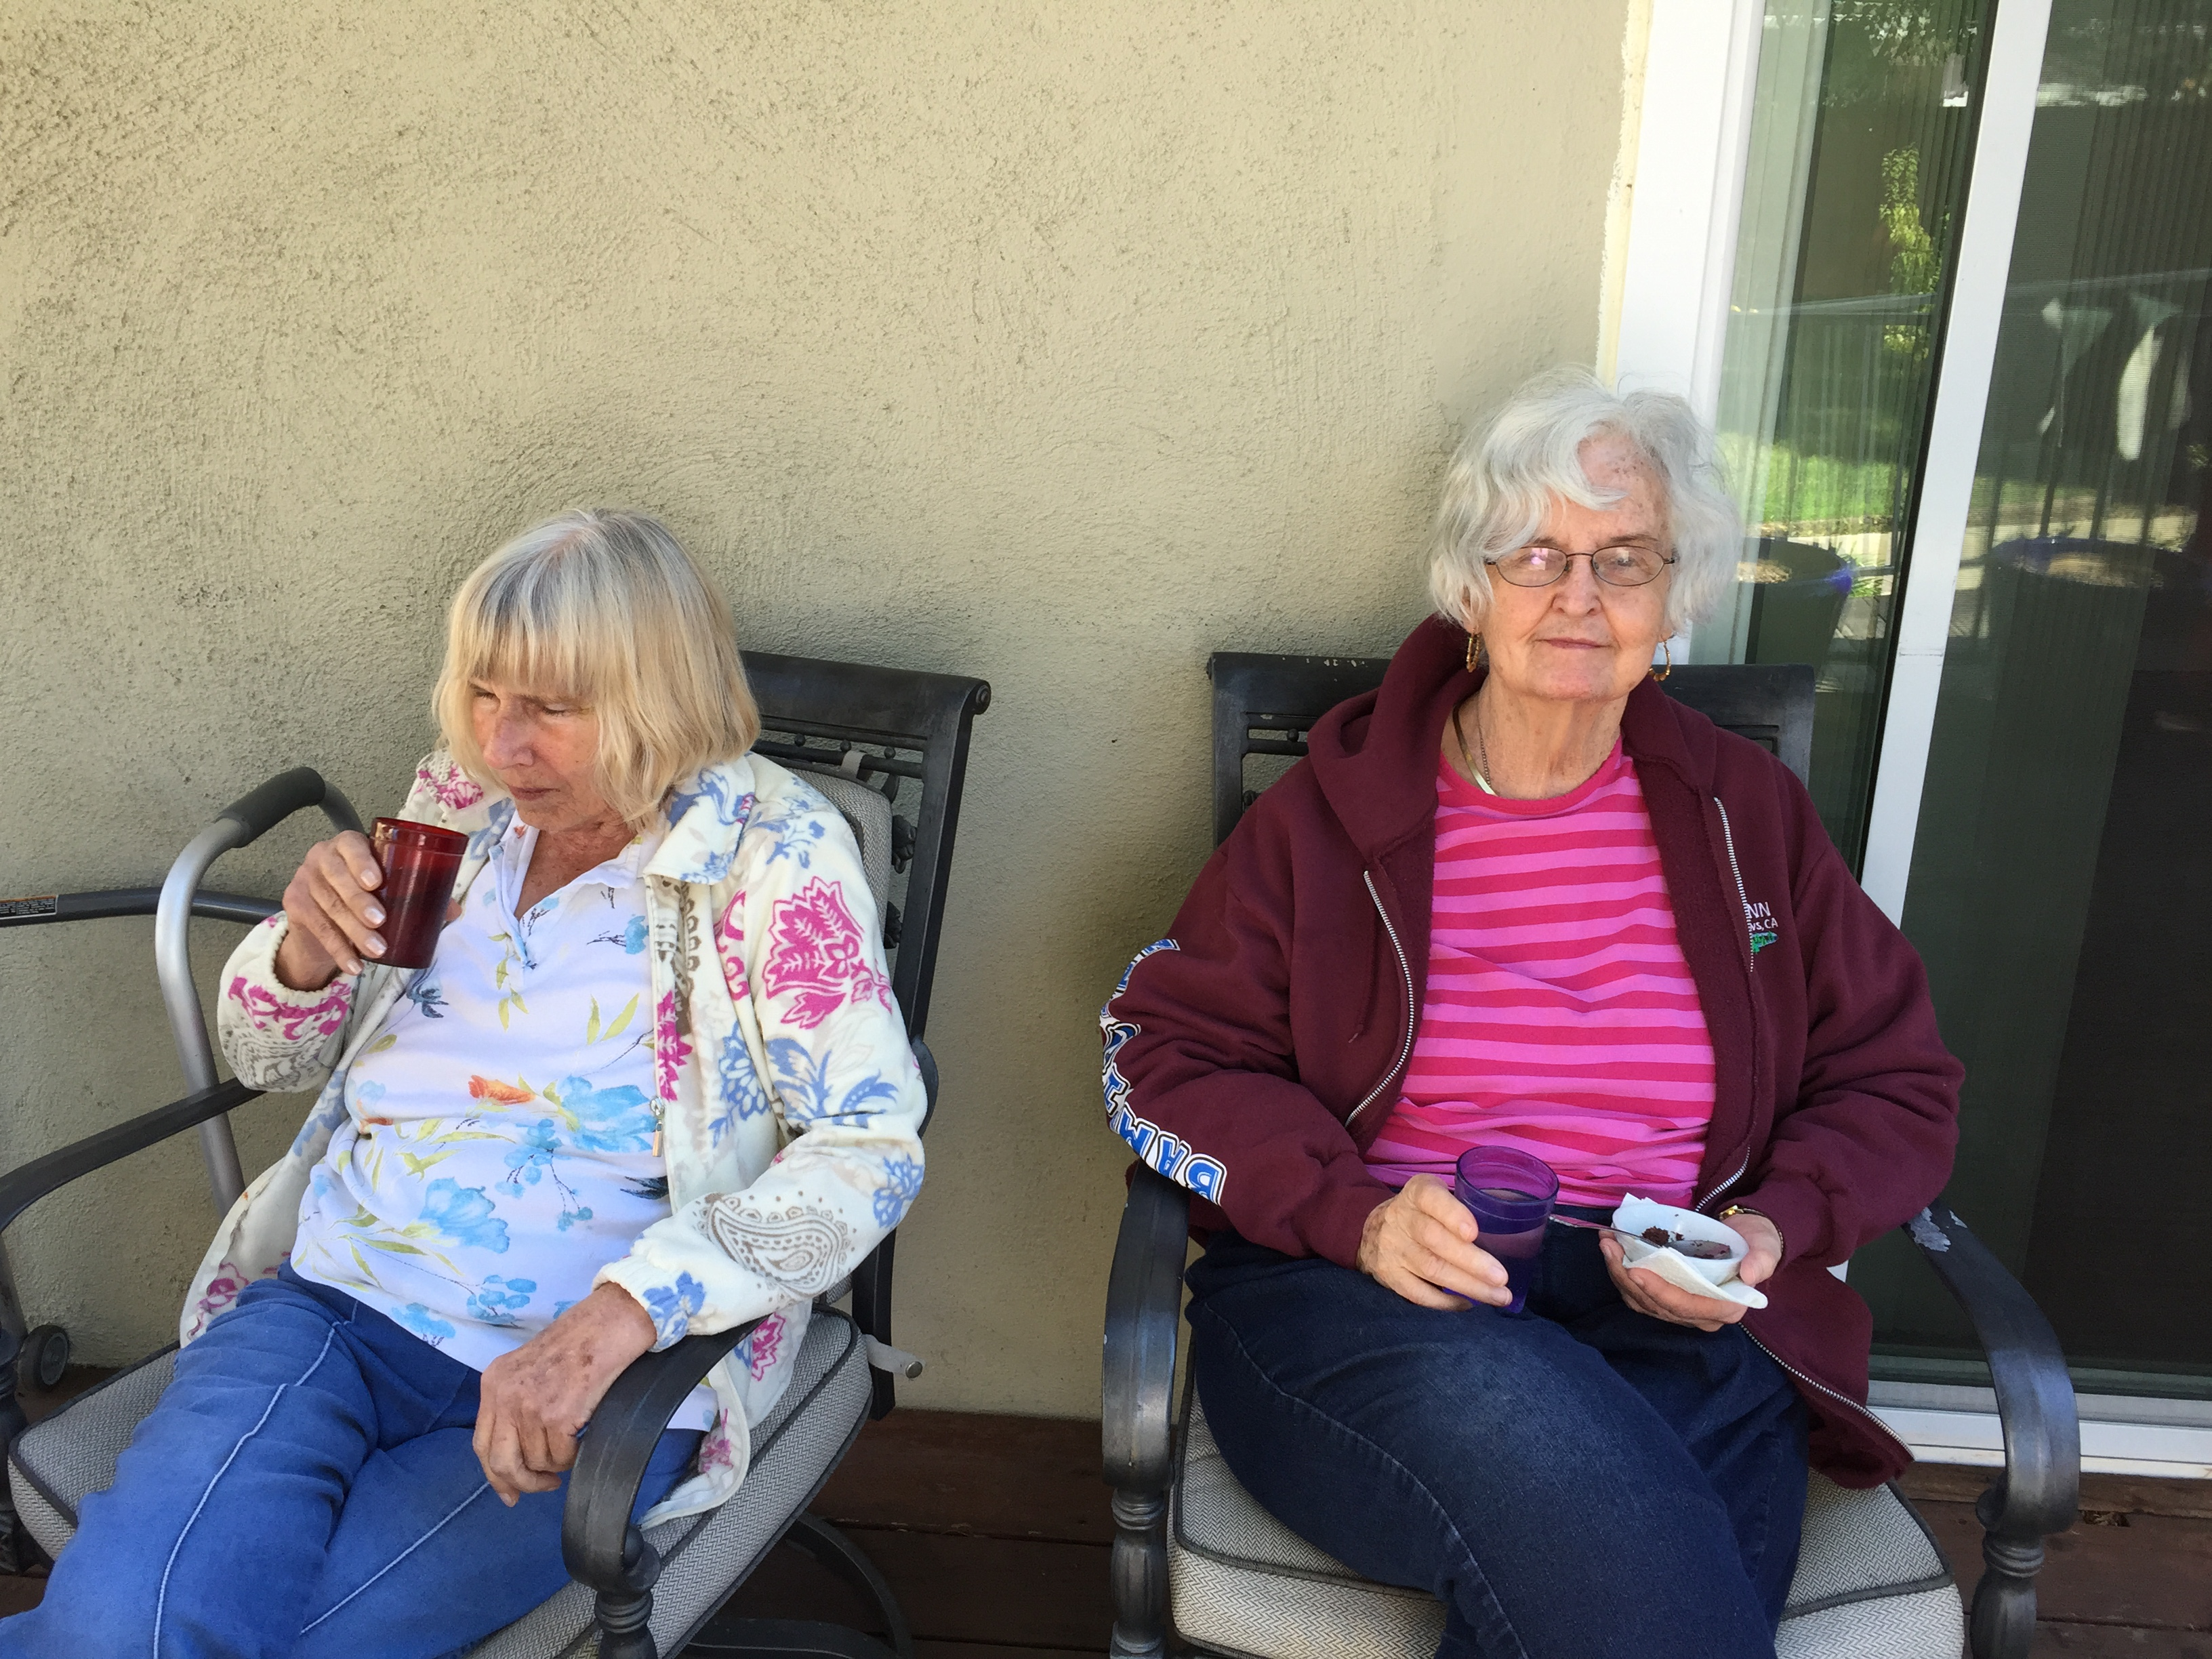 2 women having snacks out on the deck